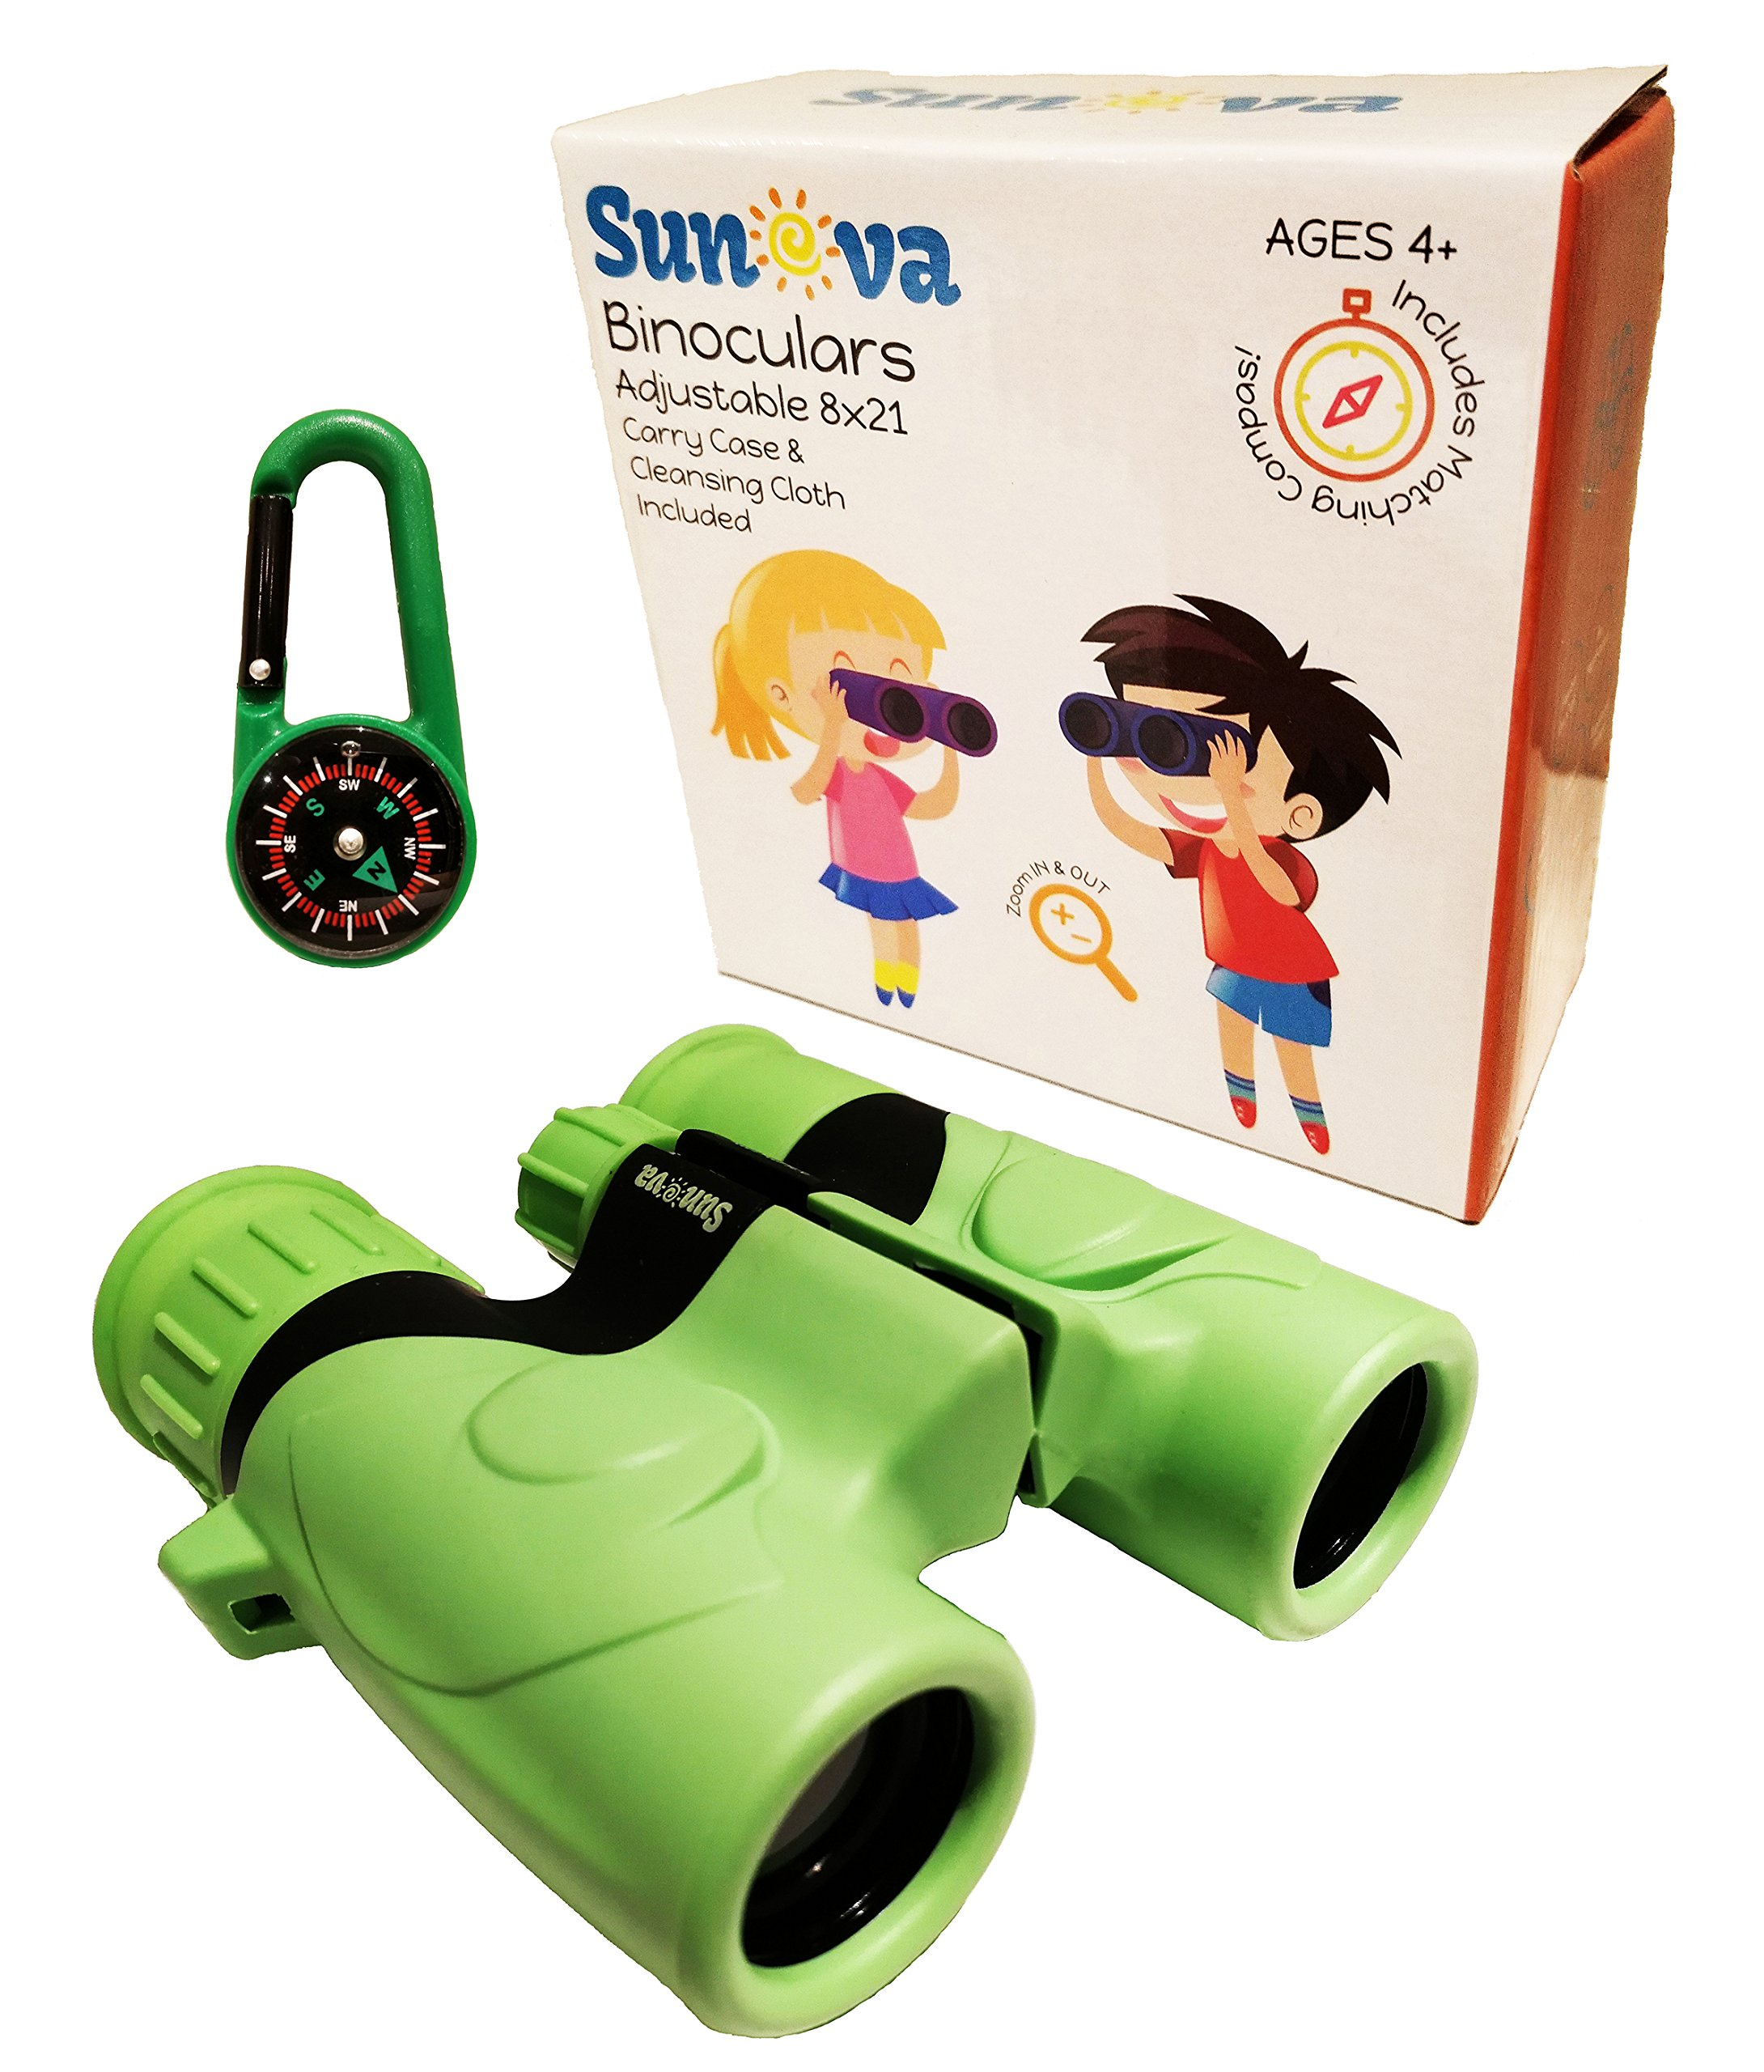 Sunova Kids Binoculars 8x21 Hi Res Optical with COMPASS Wrist Strap Carrying Bag for Boys and Girls - Shock Proof - Bird Watching - Hiking - Hunting - Outdoor Toy - Learning - Birthday Gift